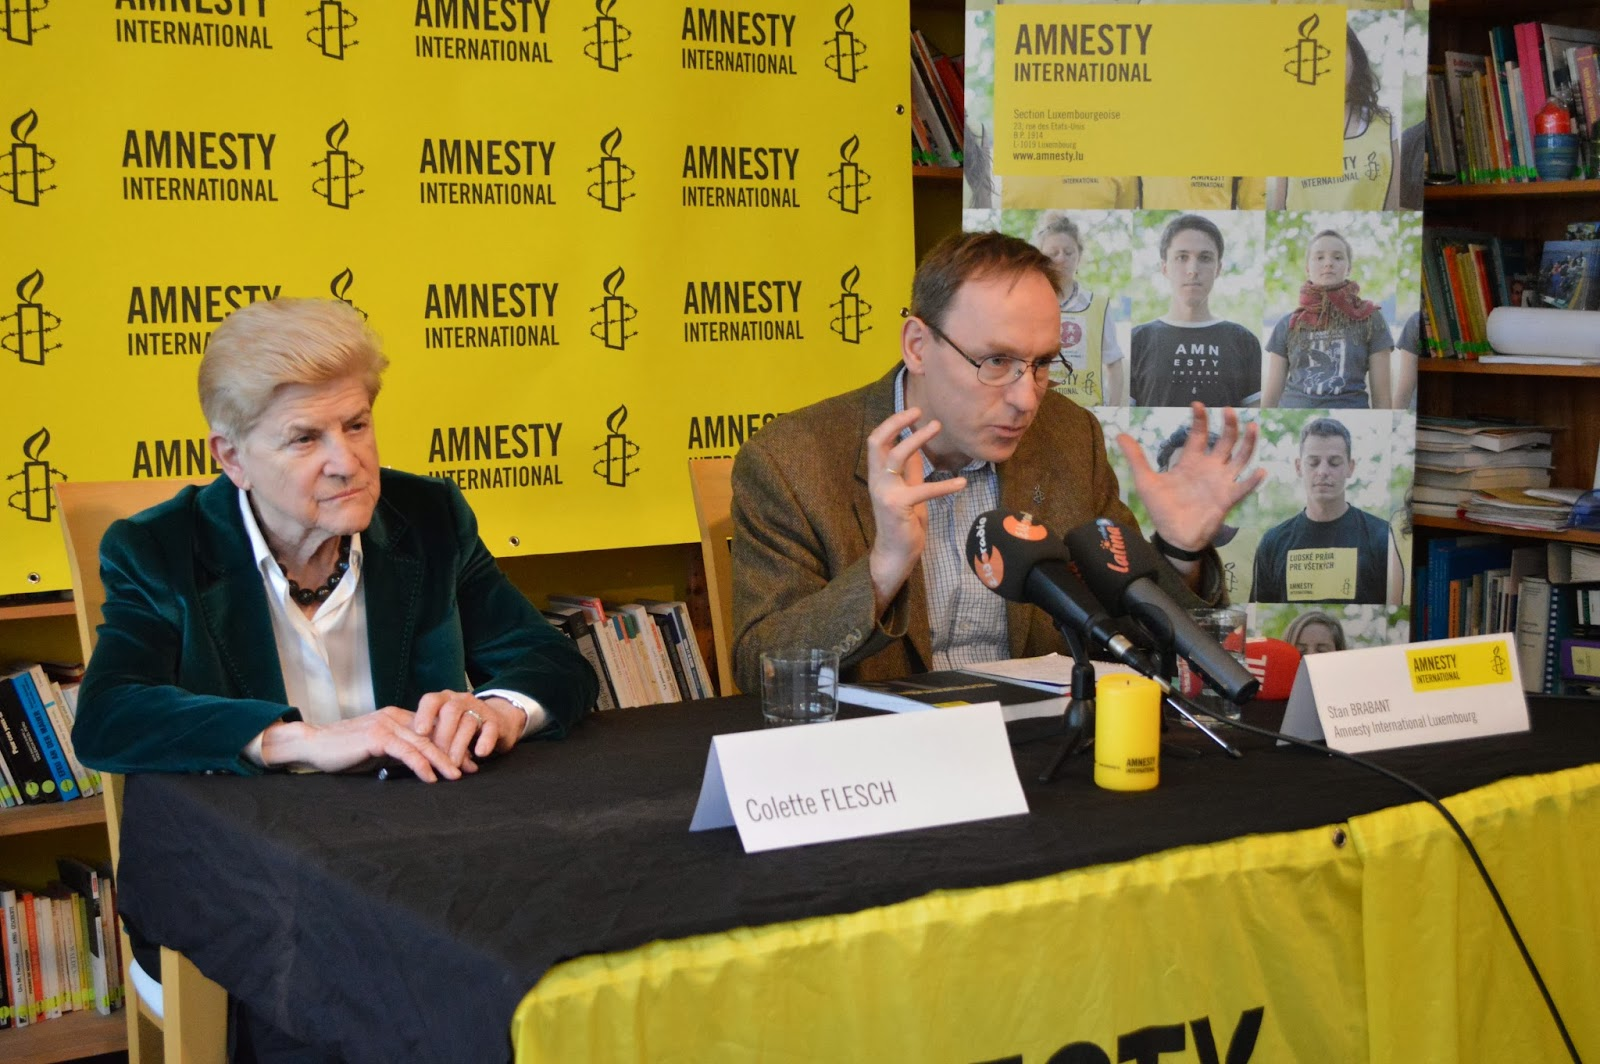 http://amnesty-luxembourg-photos.blogspot.com/2014/02/conference-de-presse-sur-la-situation.html